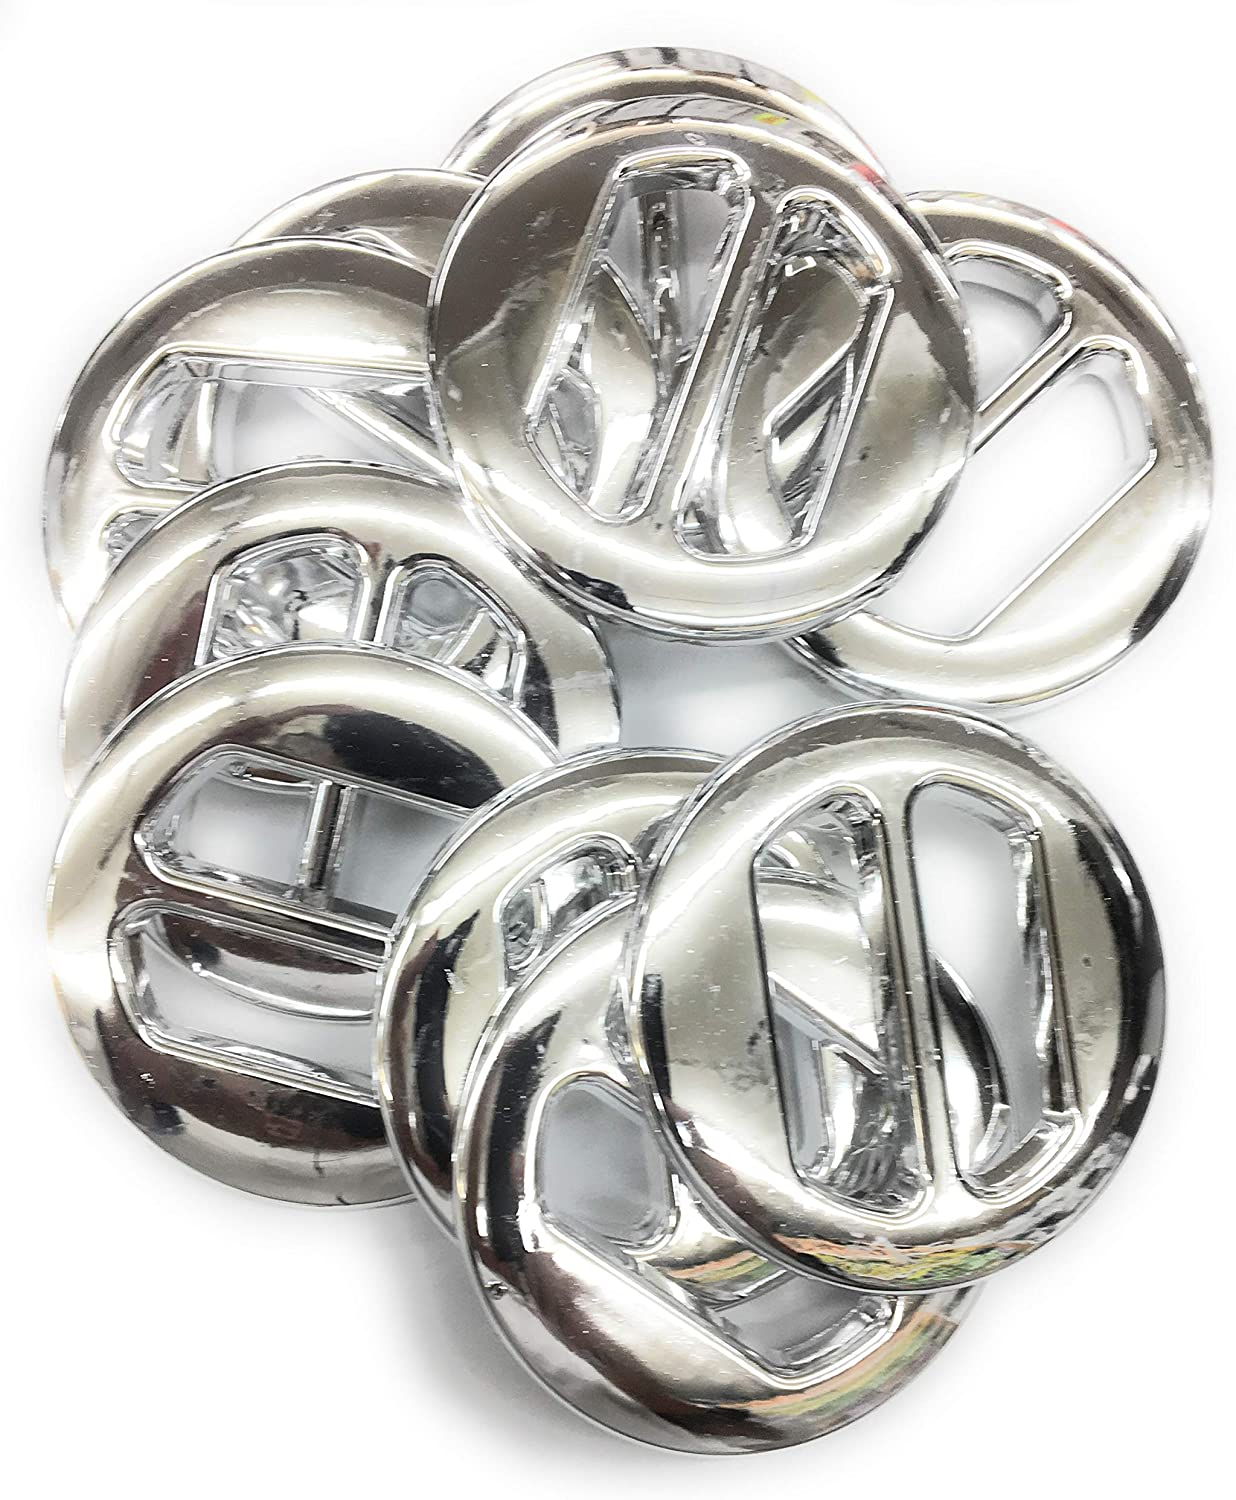 50 Belt Silver Round Buckle Silver Plated 3